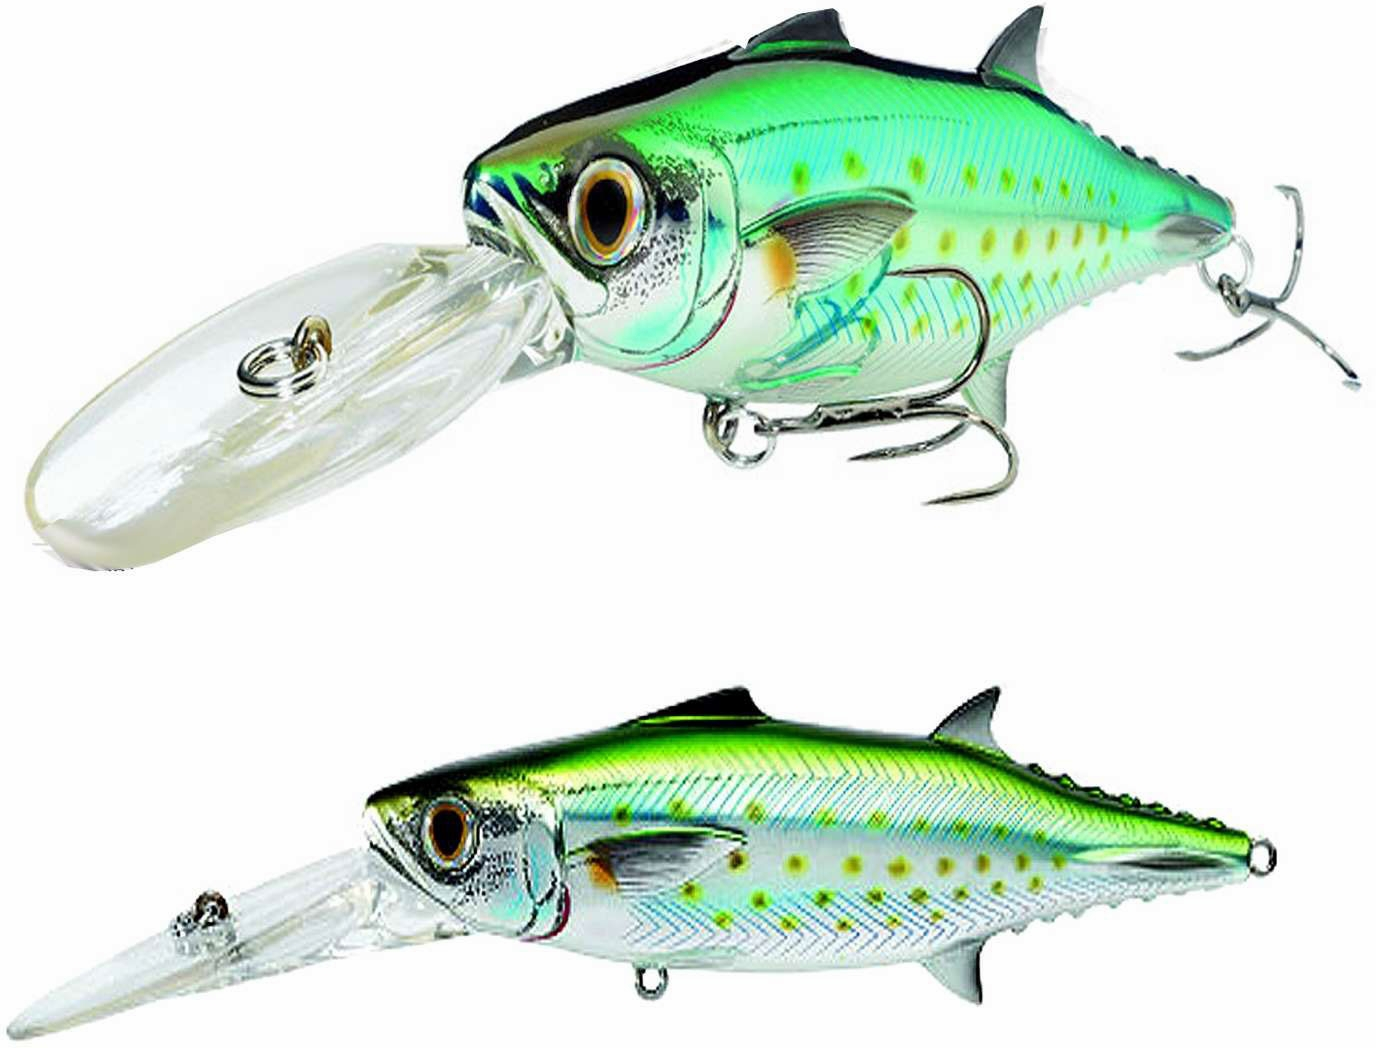 LIVETARGET Spanish Mackerel Trolling Bait Lures | TackleDirect